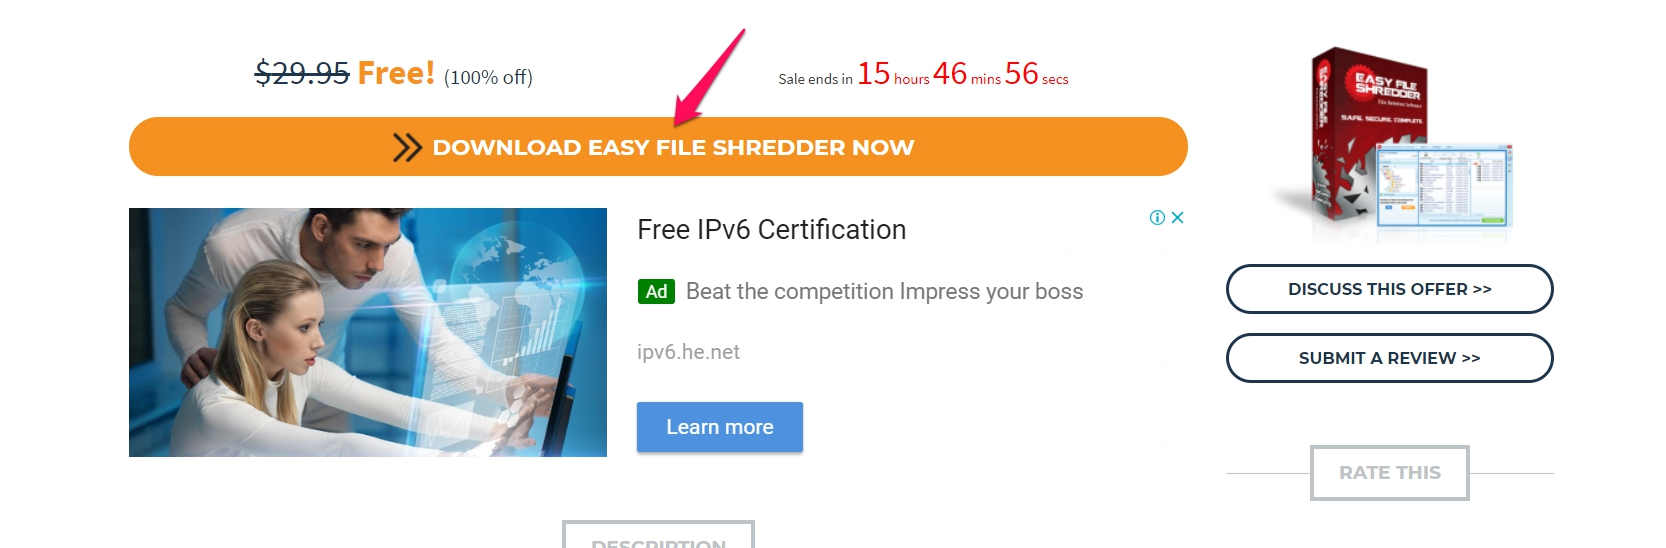 "nhấp vào ""DOWNLOAD EASY FILE SHREDDER NOW"""